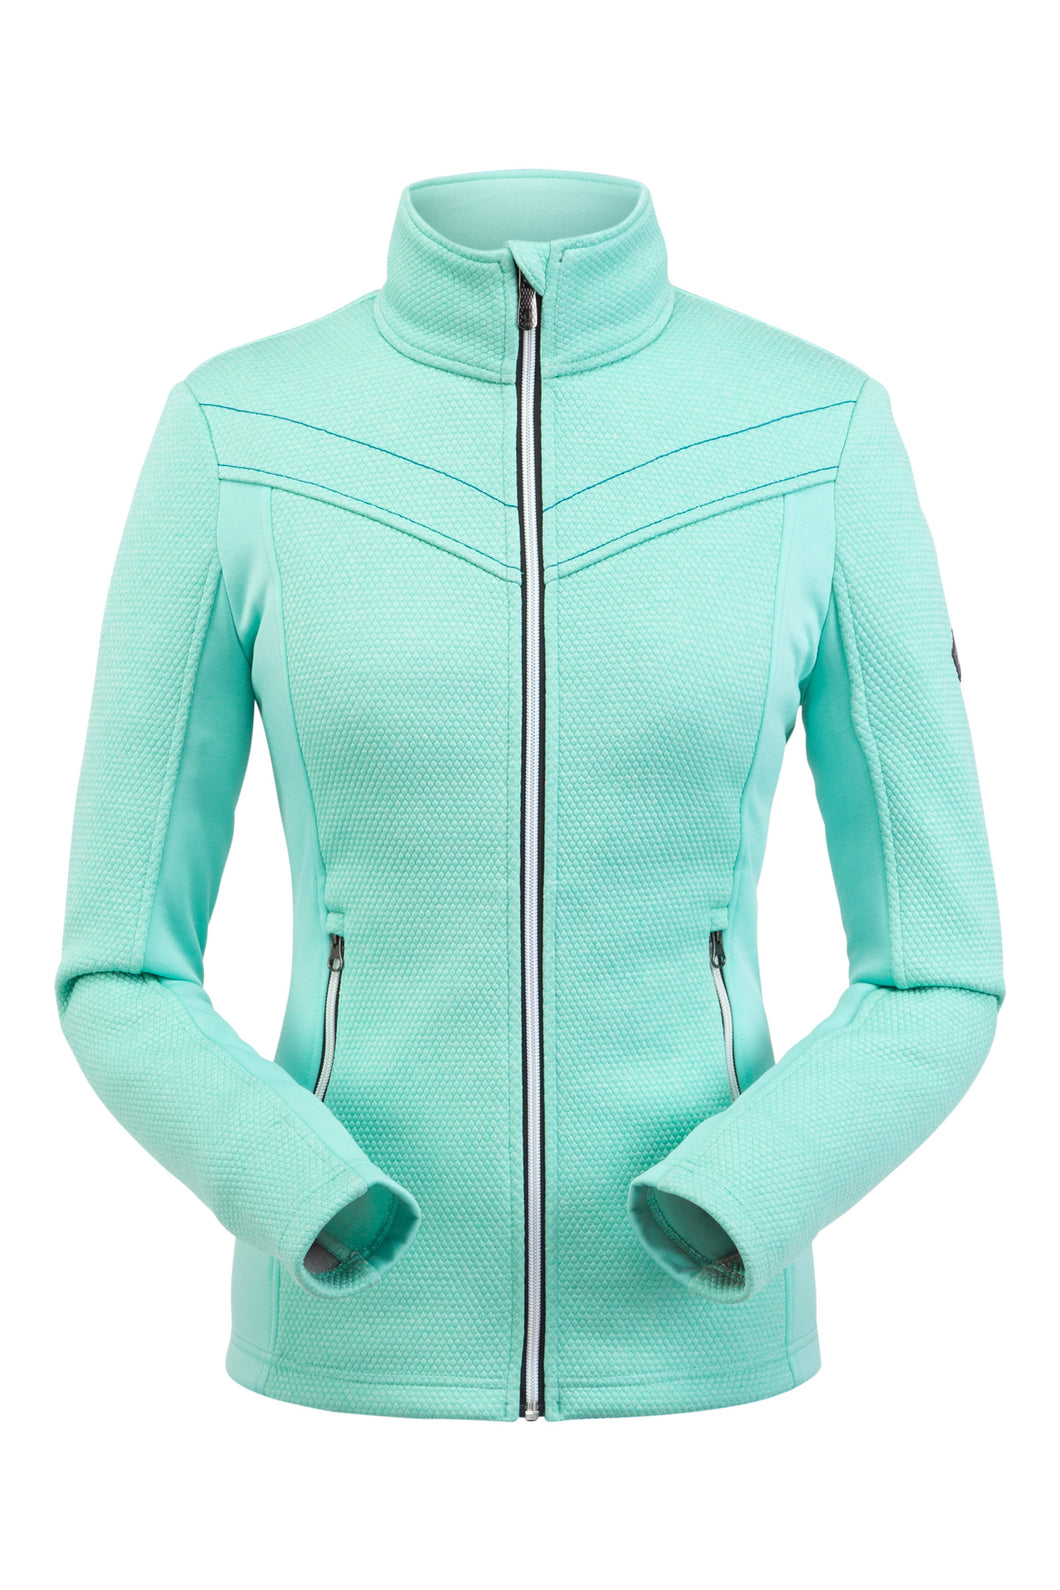 'Spyder' 194068-349 - Women's Active Sports Encore Fleece Jacket - Vintage